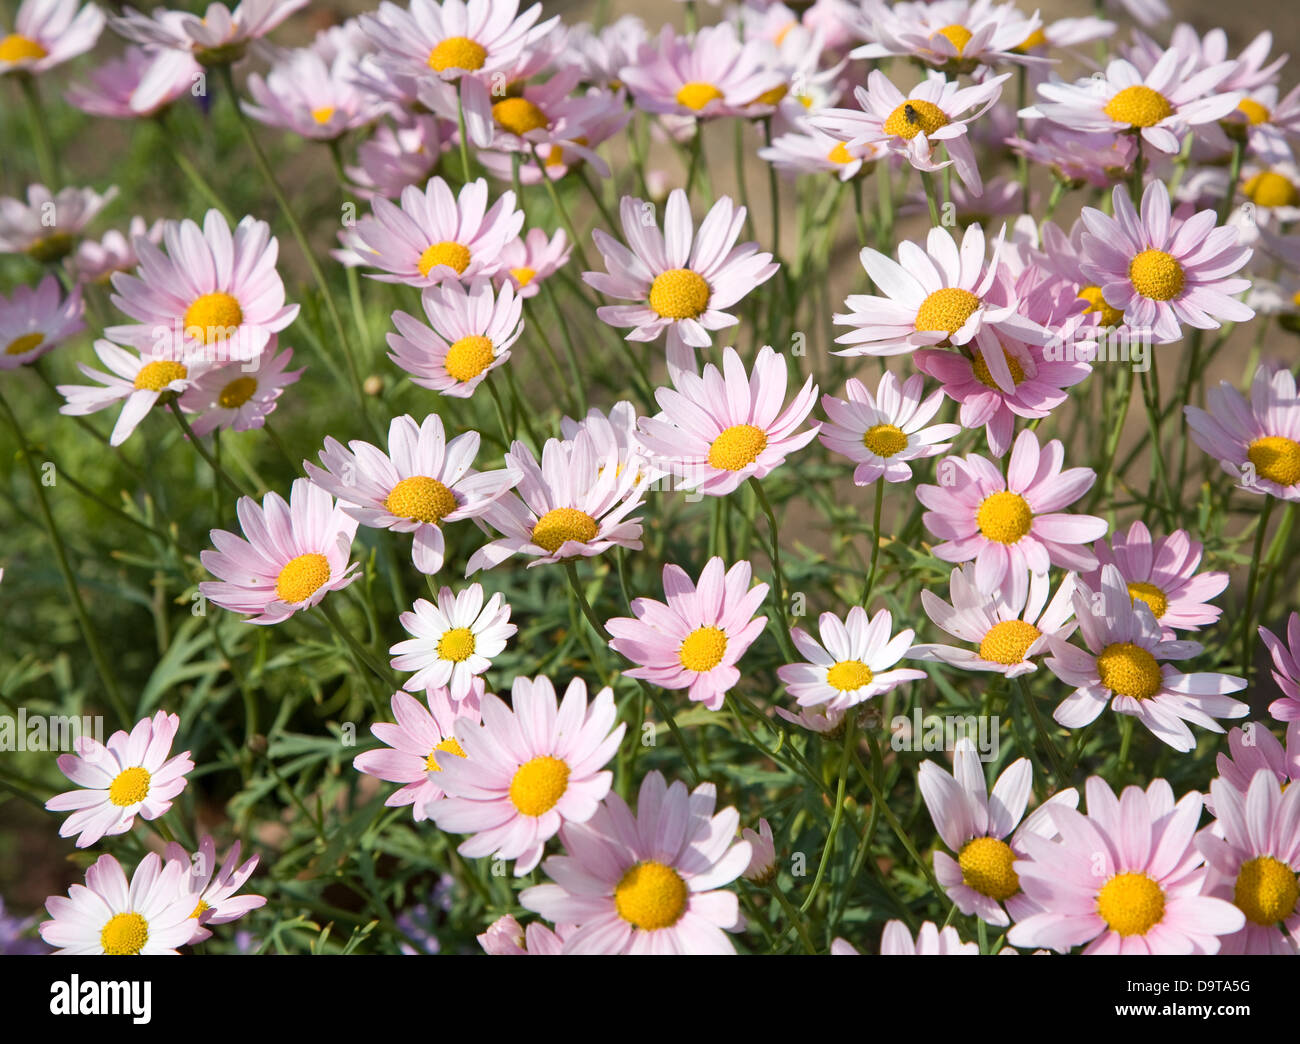 Argyranthemum pink daisy like flowers stock photo 57697852 alamy argyranthemum pink daisy like flowers izmirmasajfo